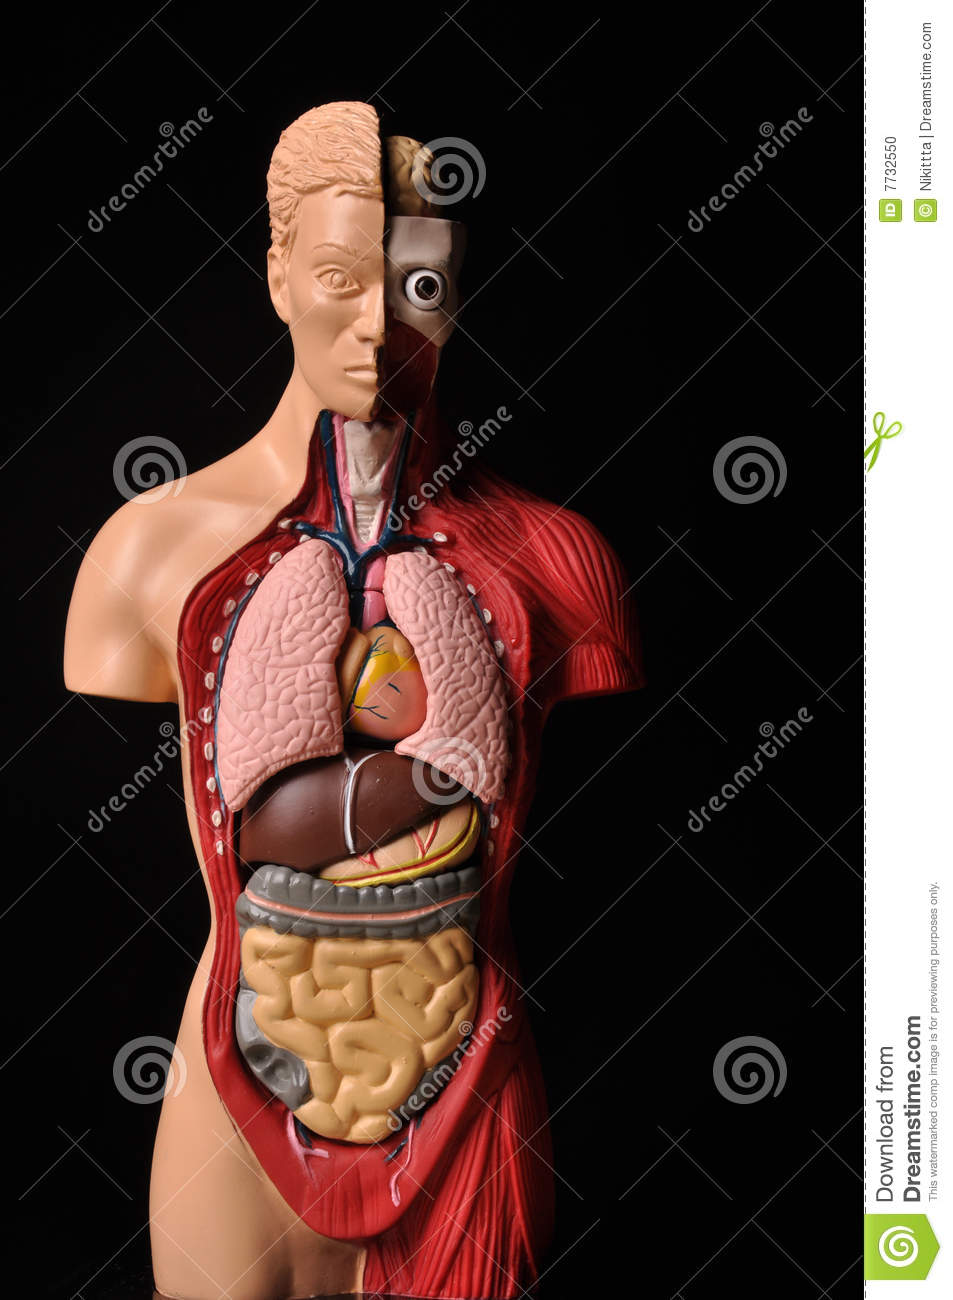 Look Inside Body Human Anatomy Stock Photo Image Of Care Human